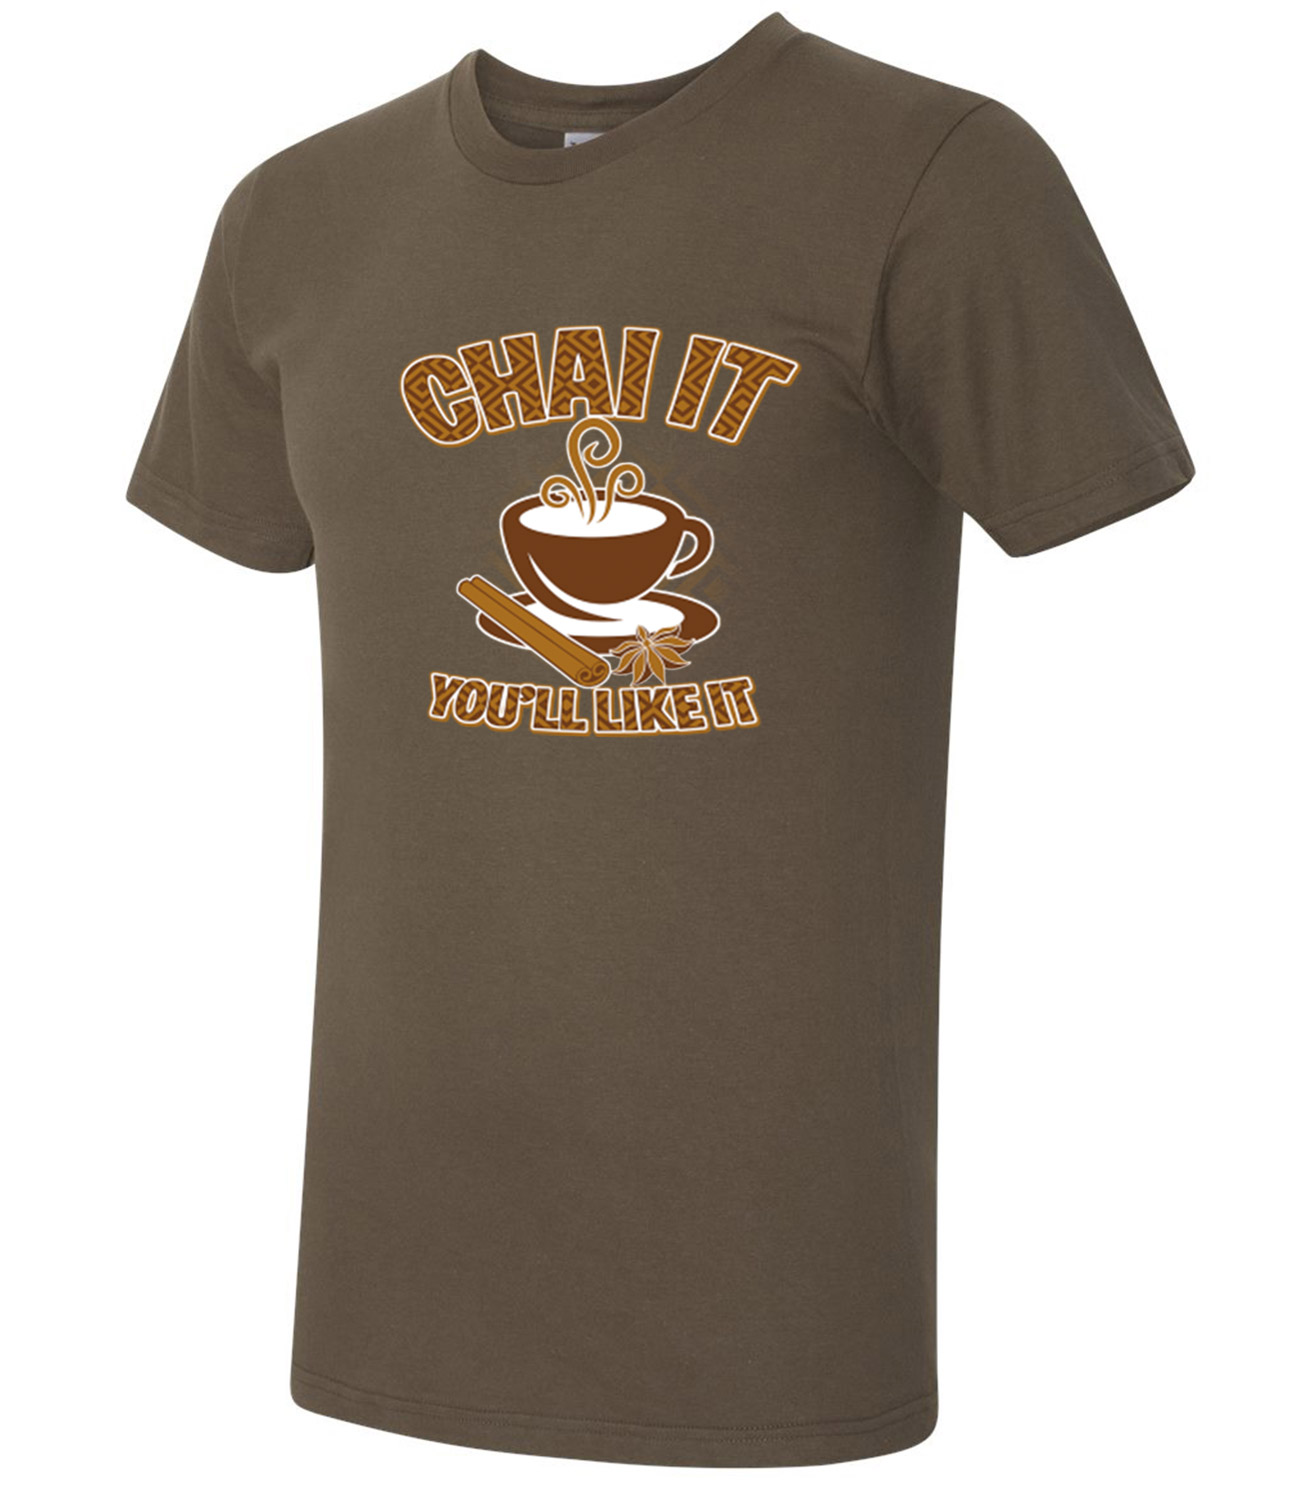 Chai it American Apparel Tea time party and Cup AA T-shirt -